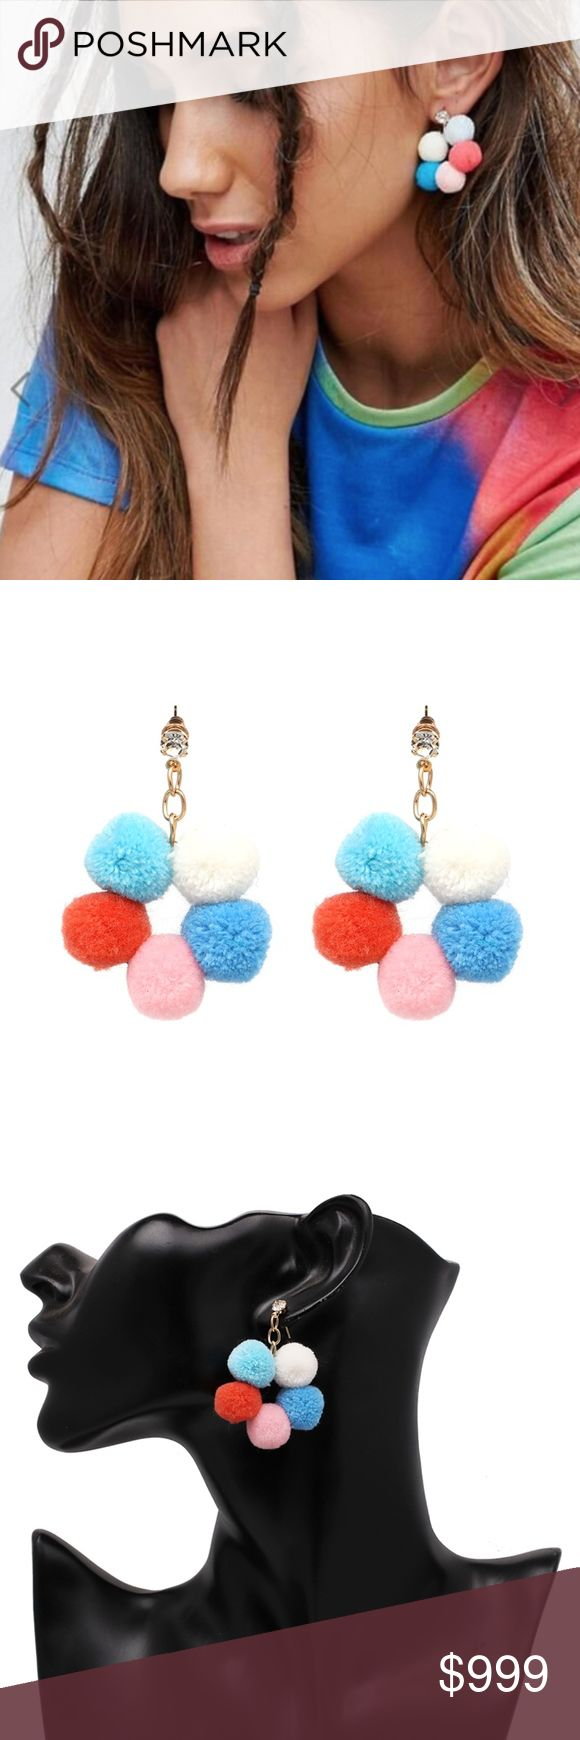 Boho Multicolor Pom Pom Bubble Ball Earrings Brand new in original packaging.  Fun 60s retro music festival bubble colorful pom pom earrings are a great way to stand out from the crowd!  Lightweight, bohemian, & trendy multicolor ball dangling earrings made of white, light blue, sky blue, blush pink & coral / orange spheres. Dangling on a gold tone chain w. clear crystal stud & post backing. All sales are final, please ask all Q's prior to purchase! Jewelry Earrings